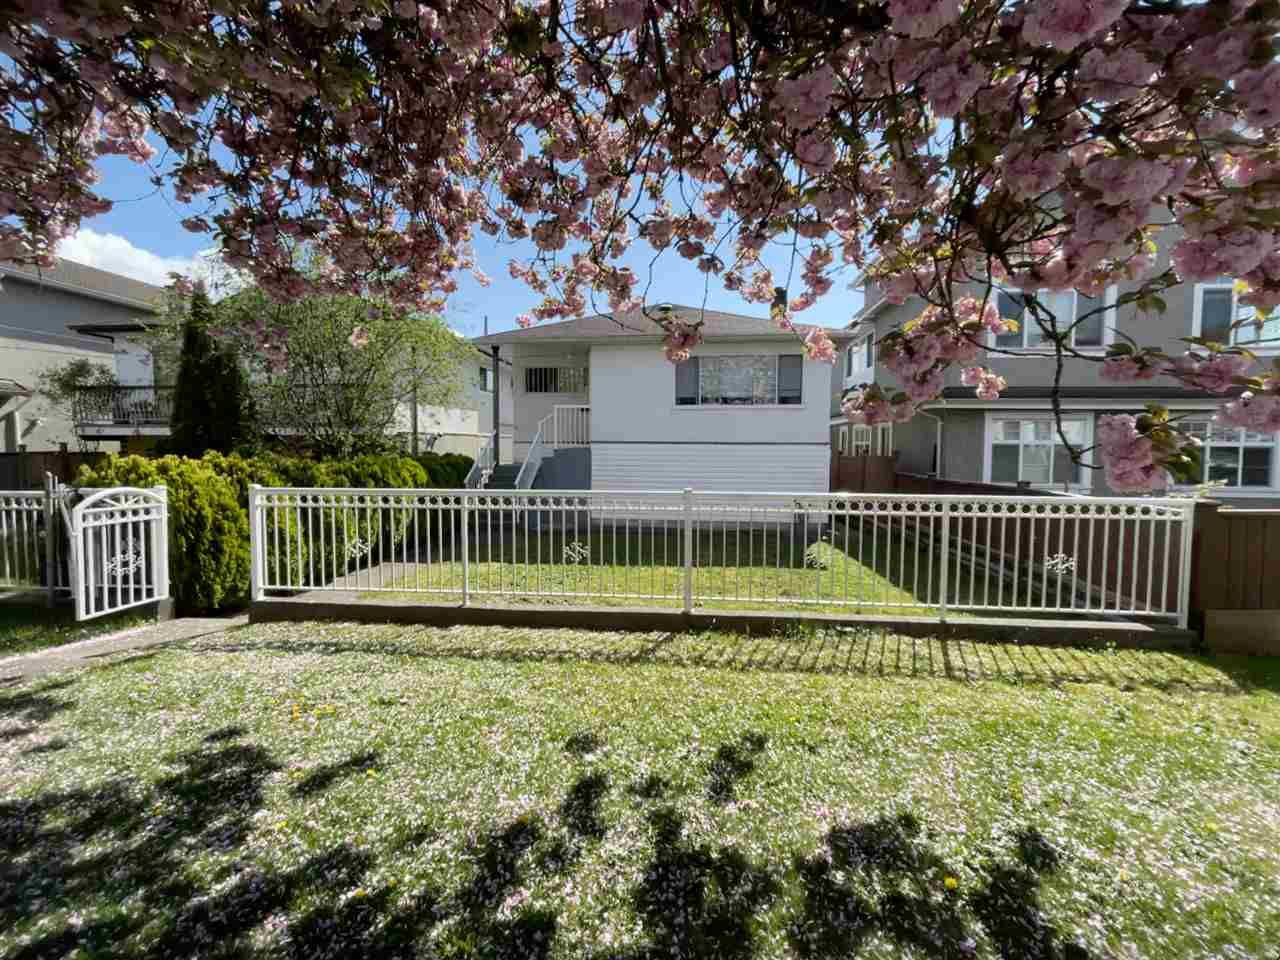 Main Photo: 3016 HORLEY Street in Vancouver: Collingwood VE House for sale (Vancouver East)  : MLS®# R2572370